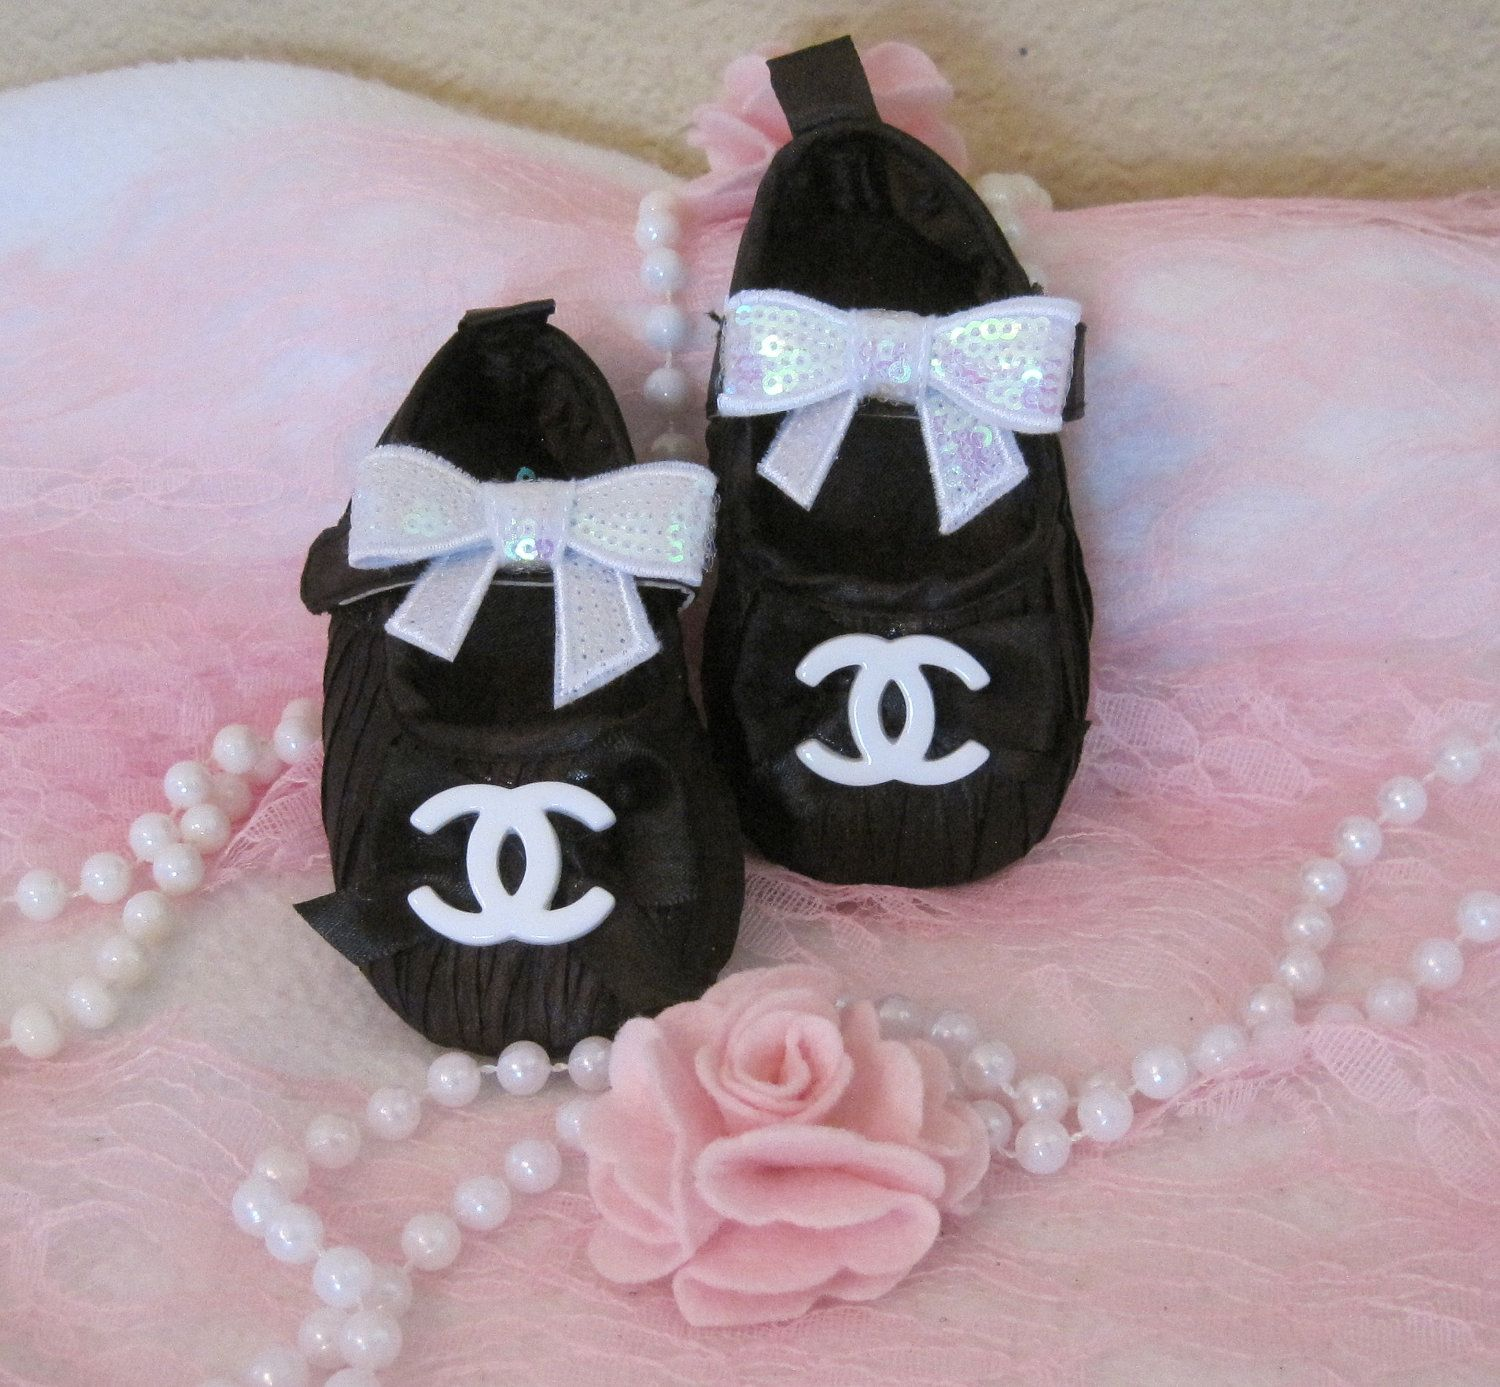 Baby shoes Chanel inspired black someday Pinterest